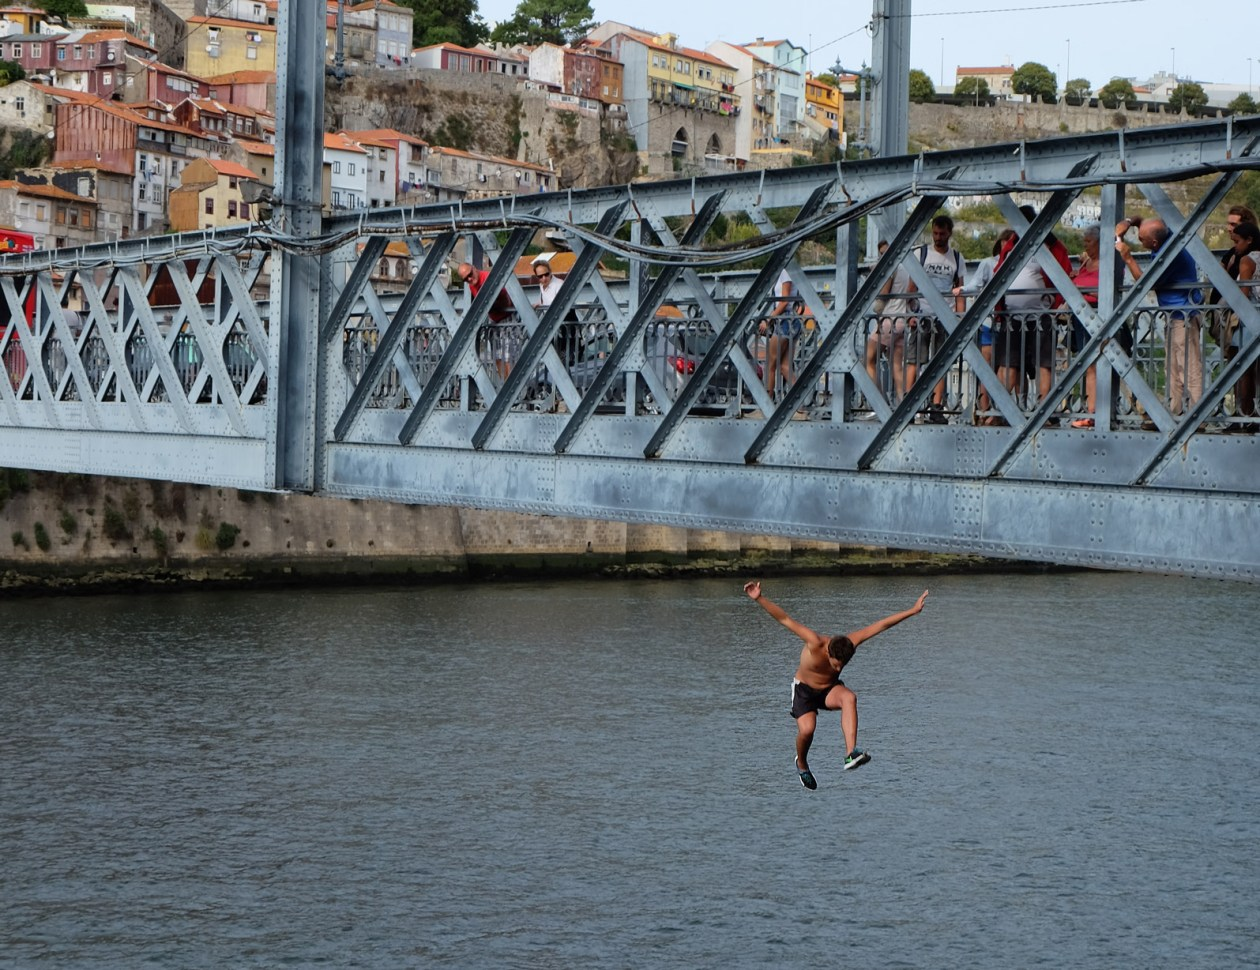 A young lad jumps into the Douro river from the Luís I Bridge